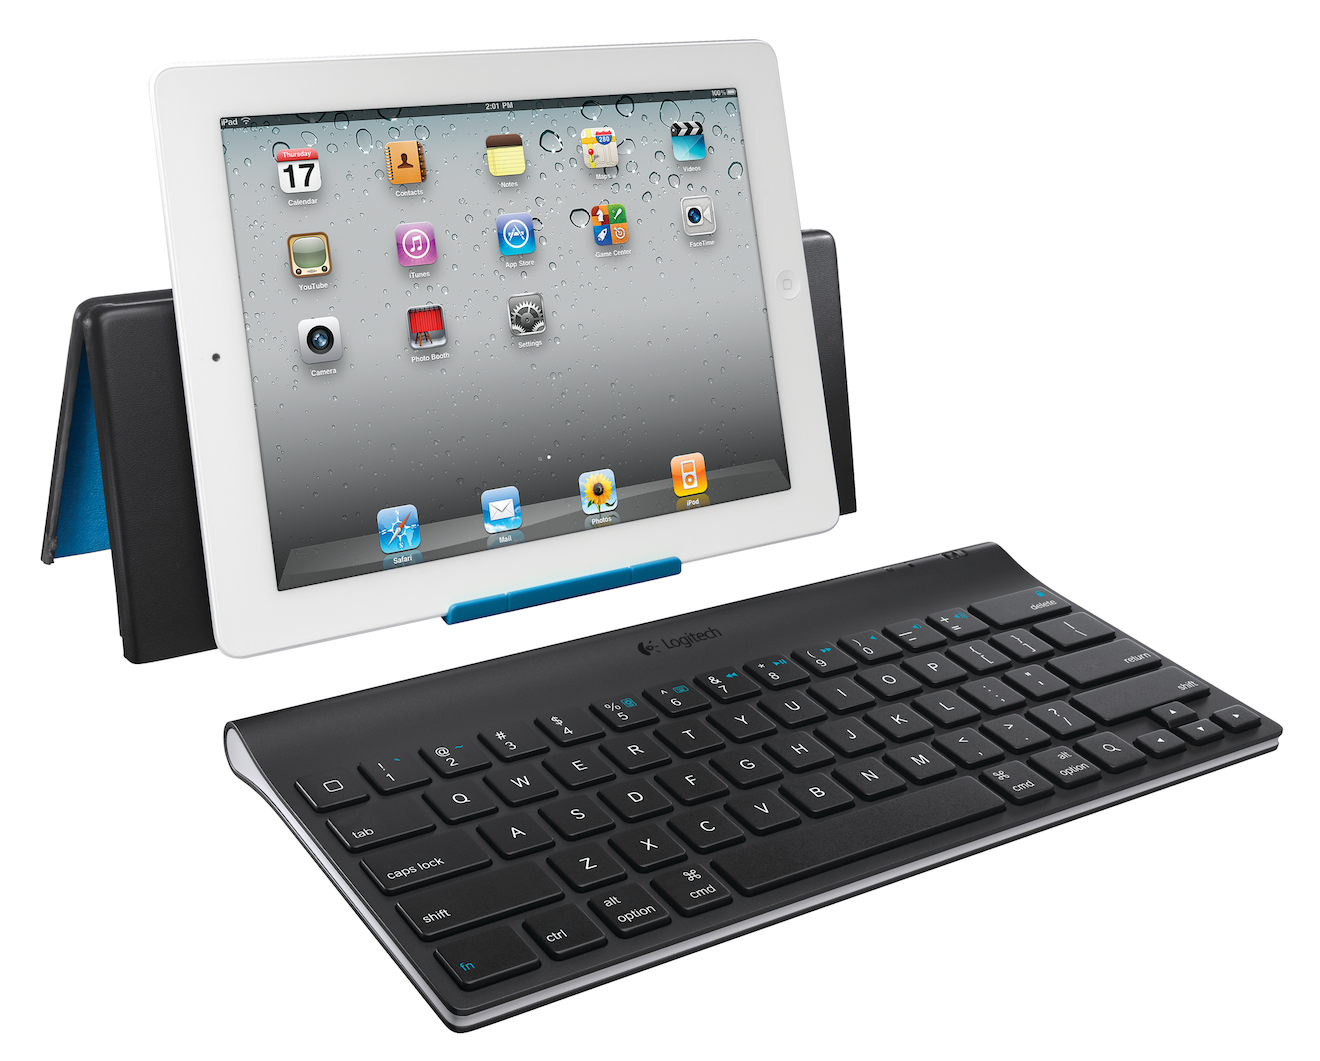 The Logitech Tablet Keyboard for iPad